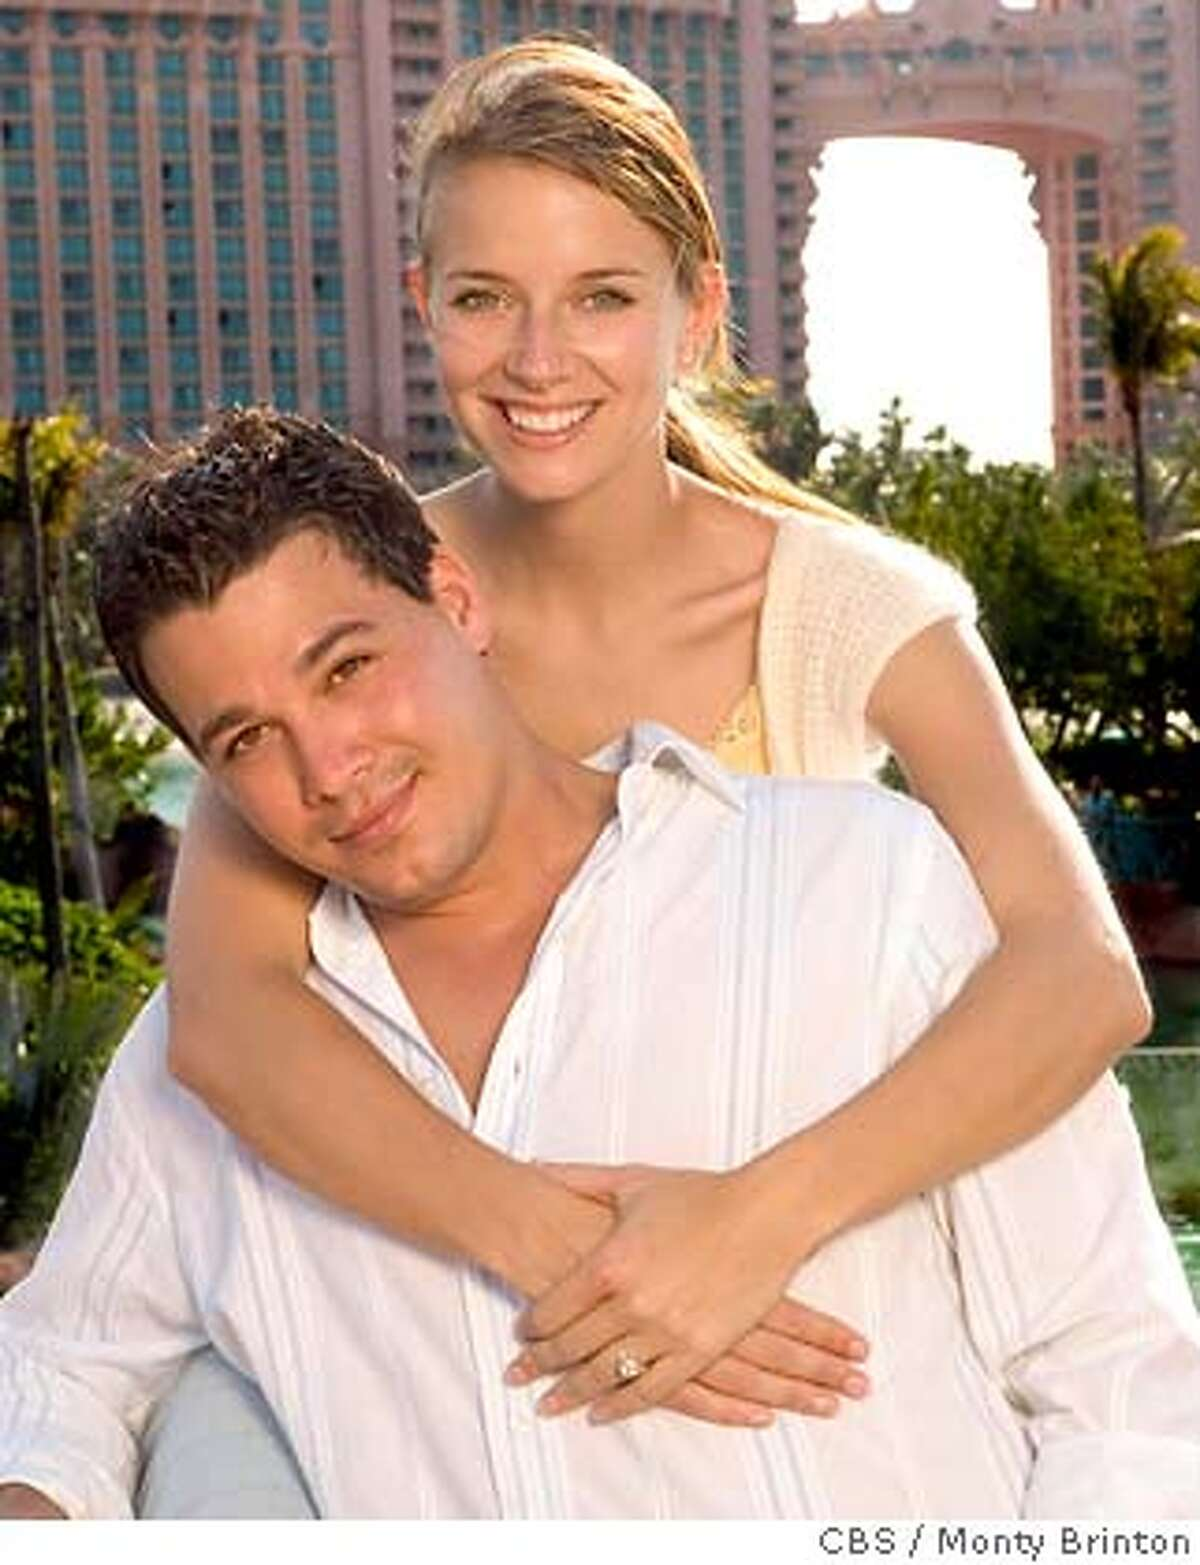 In this undated photograph released by CBS Tuesday, April 19, 2005, Survivor and Amazing Races Rob Mariano and Amber Brkich pose for a portrait at Atlantis, Paradise Island in The Bahamas. A two-hour prime-time special on the wedding of Rob Mariano and Amber Brkich, who were wed in the Bahamas Saturday, will air May 24, 2005. (AP Photo/CBS, Monty Brinton)